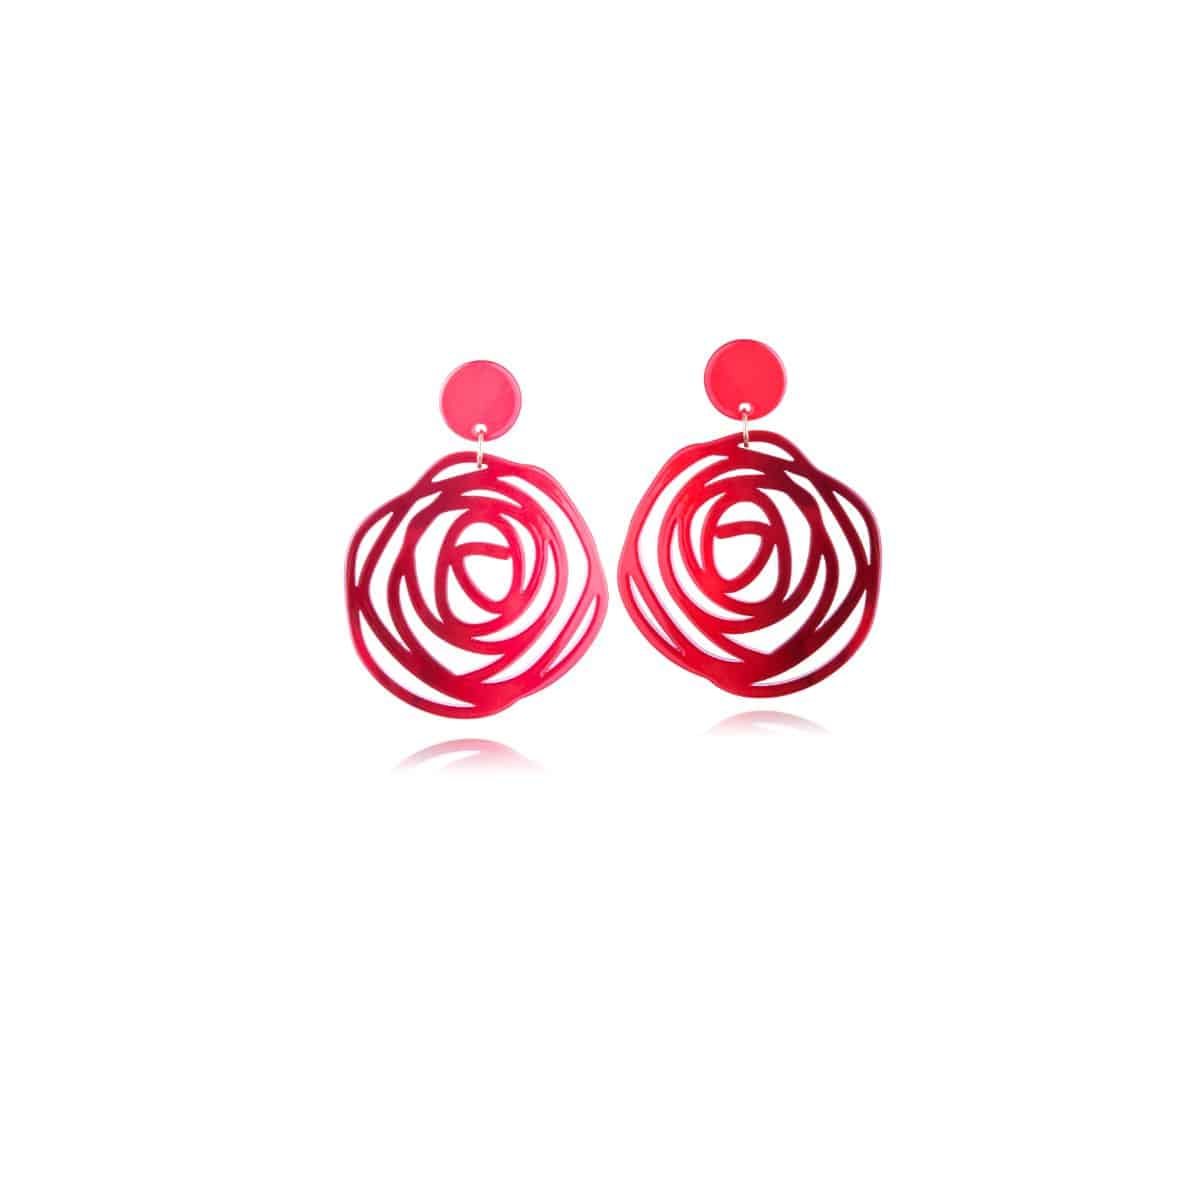 Twister earrings, red resin with openwork circular shape.